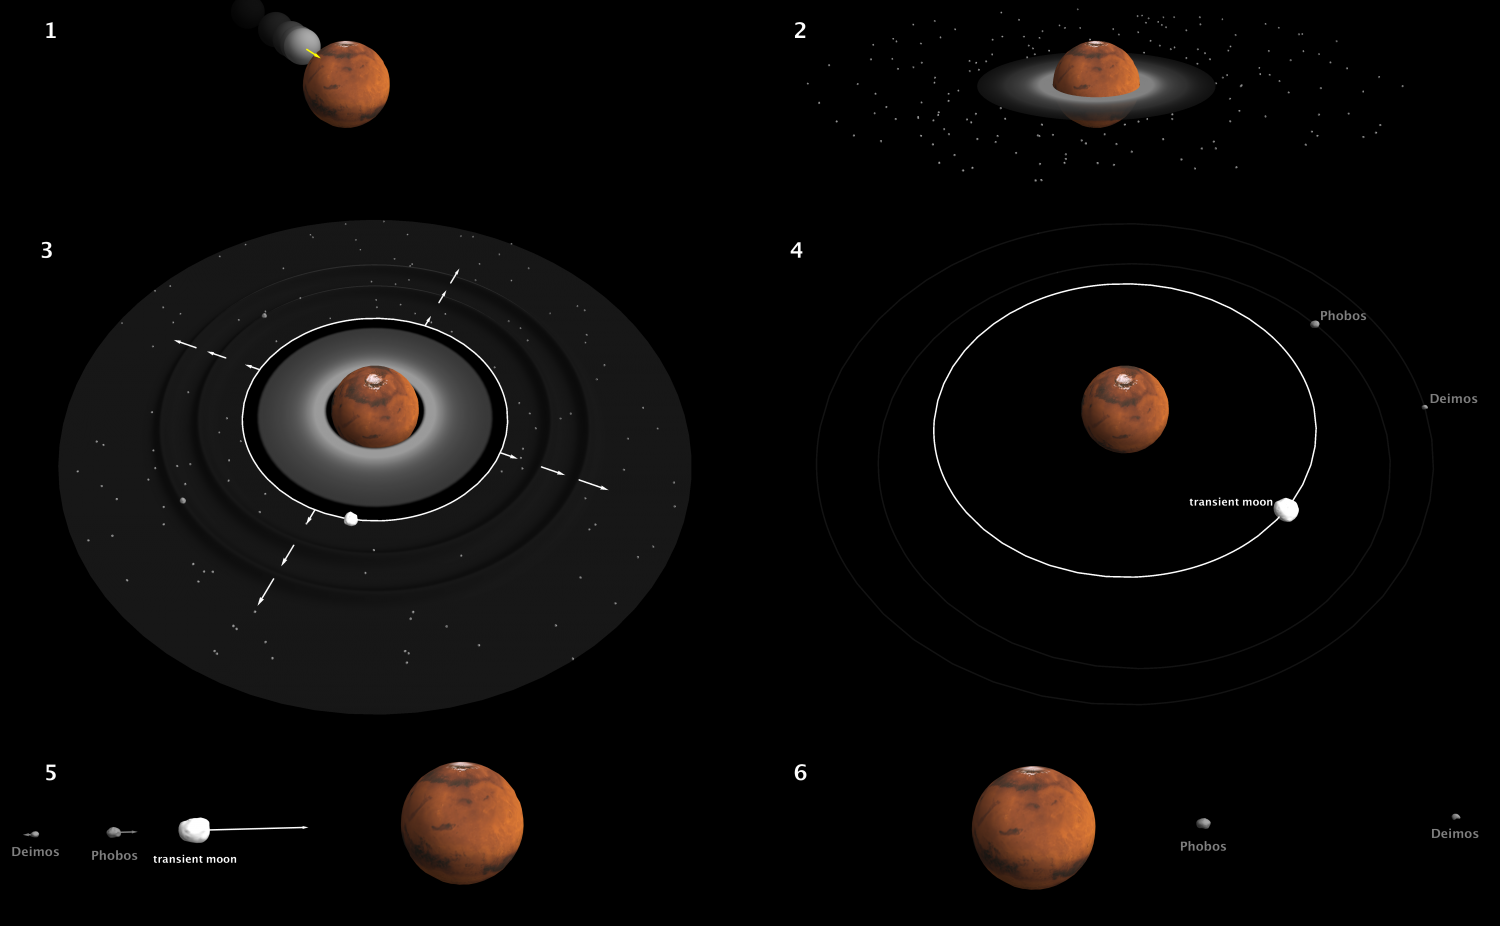 giant impact: Solving the mystery of how Mars' moons formed